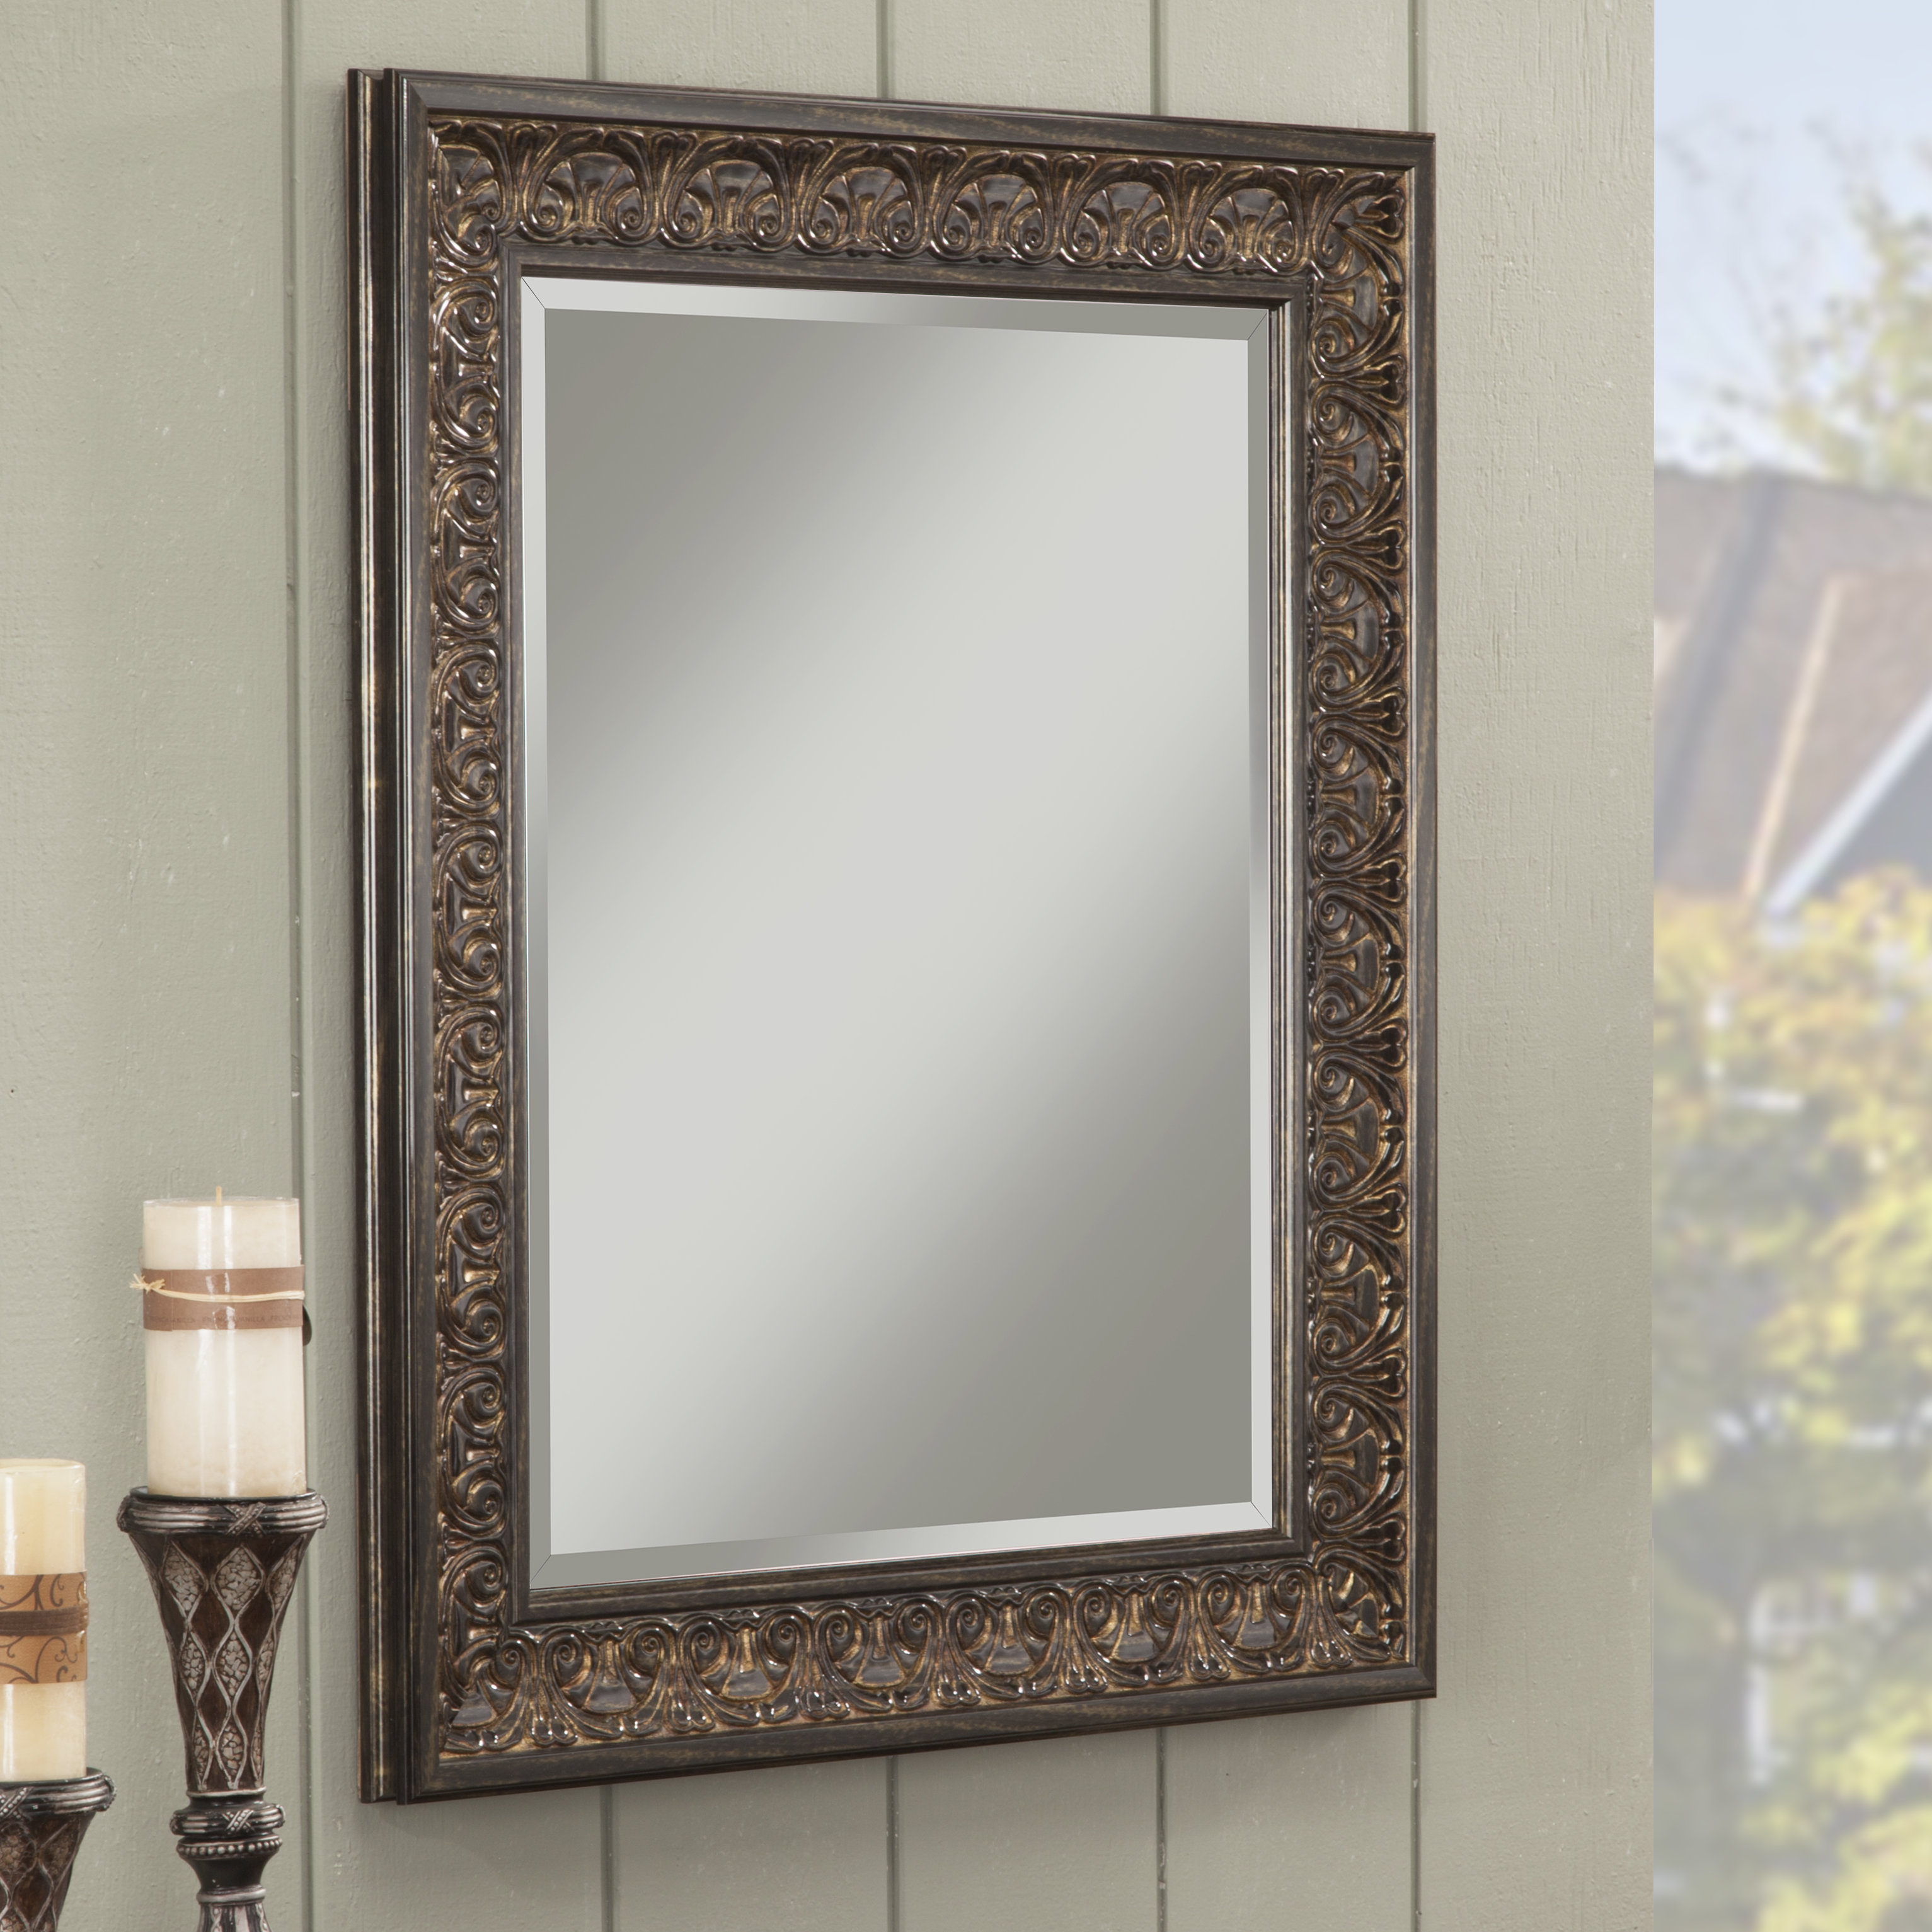 Boyers Wall Mirror With Lake Park Beveled Beaded Accent Wall Mirrors (View 5 of 20)